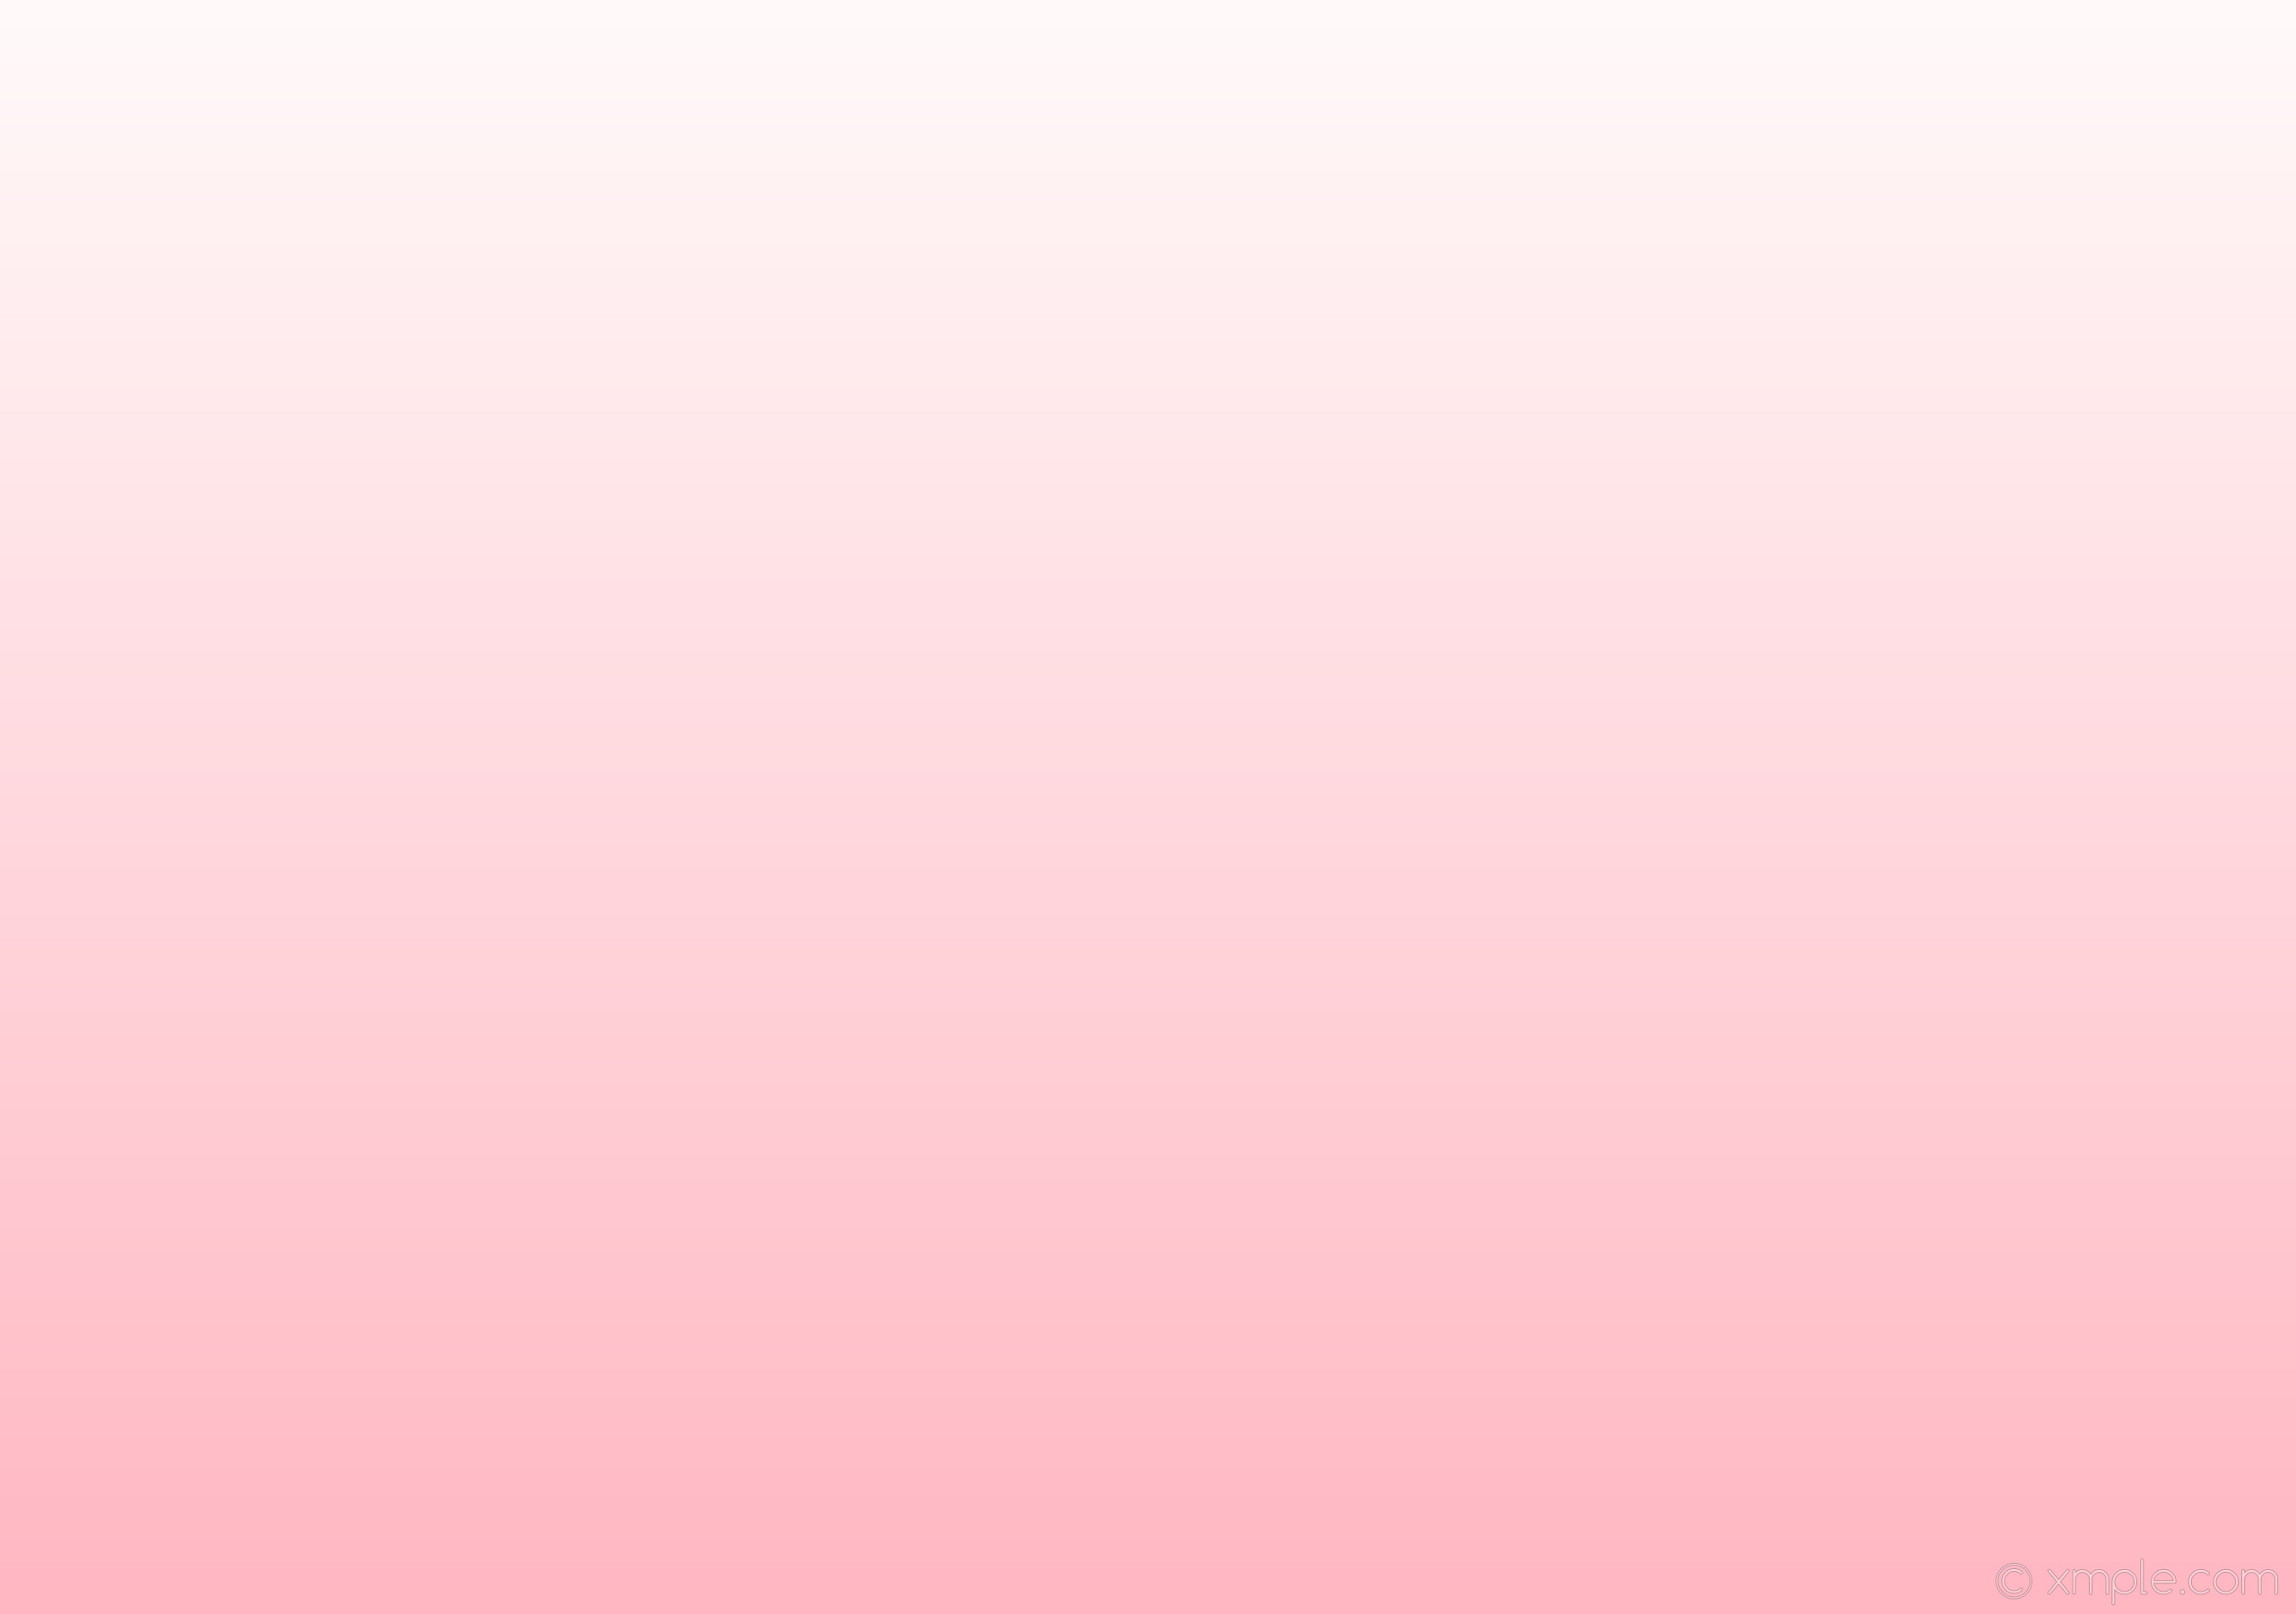 Pink and White Backgrounds (34+ pictures)